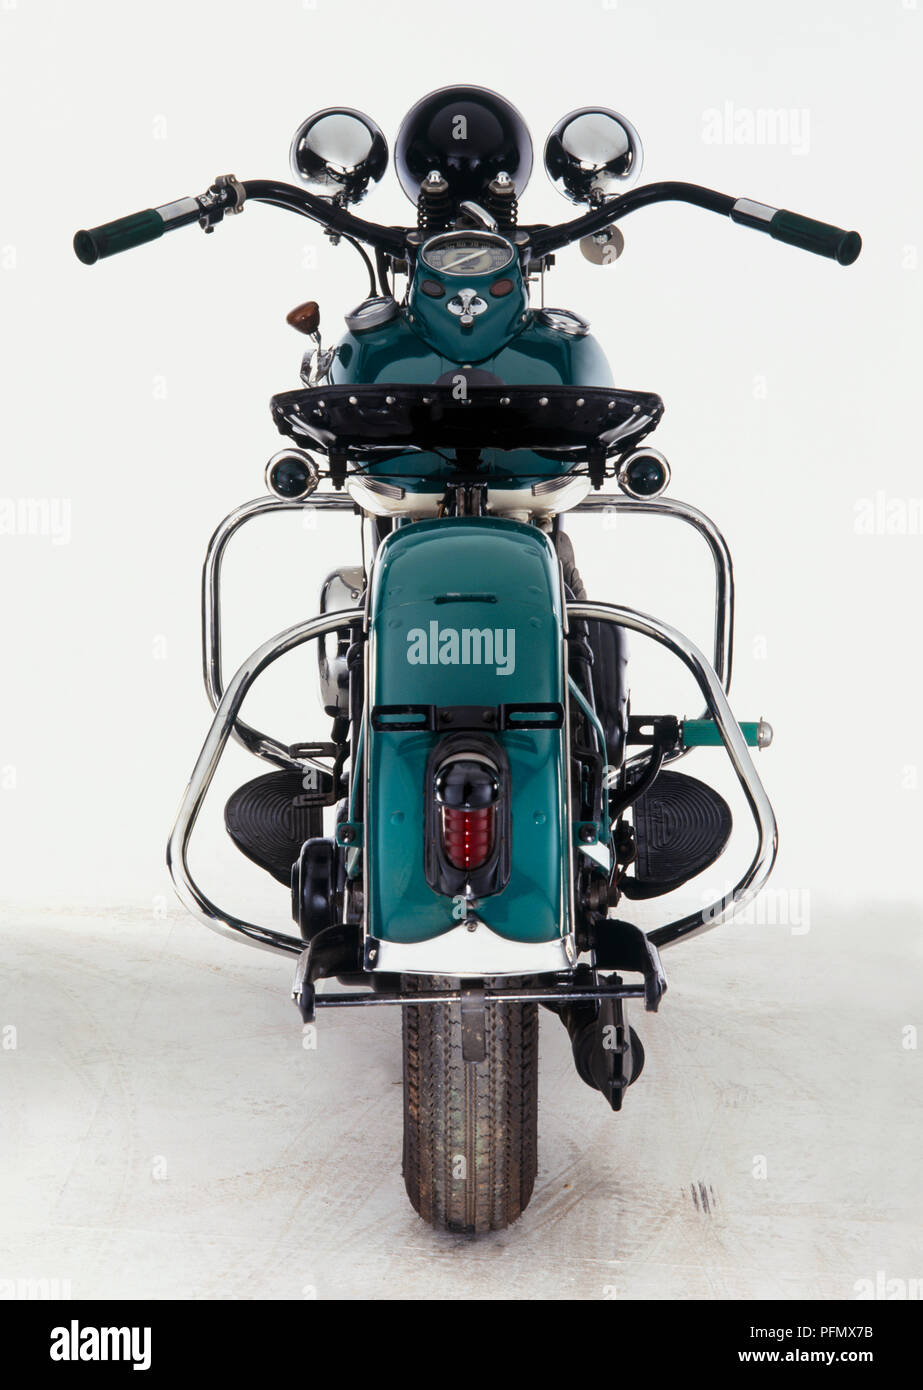 harley davidson wld 1932 1936 rear view stock photo 216203887 alamy